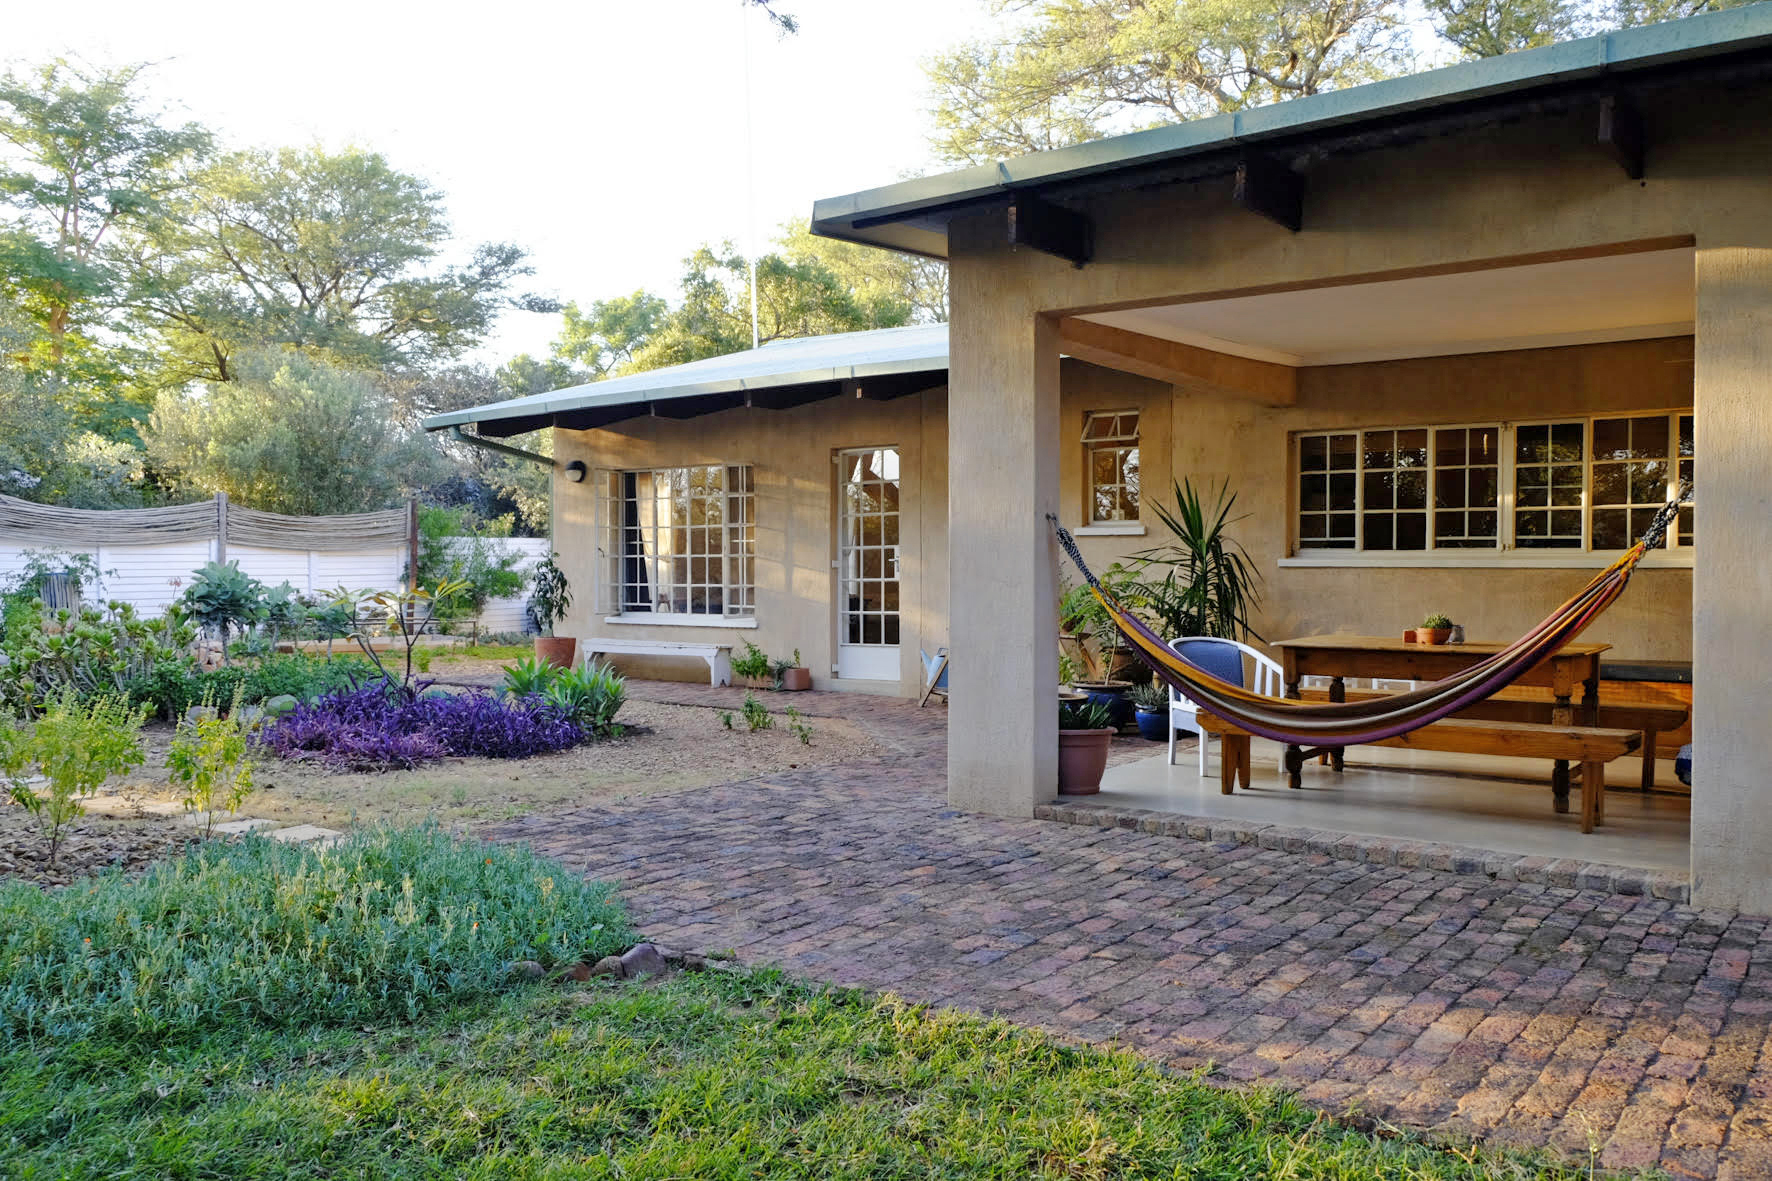 Kgale Siding Home For Rent